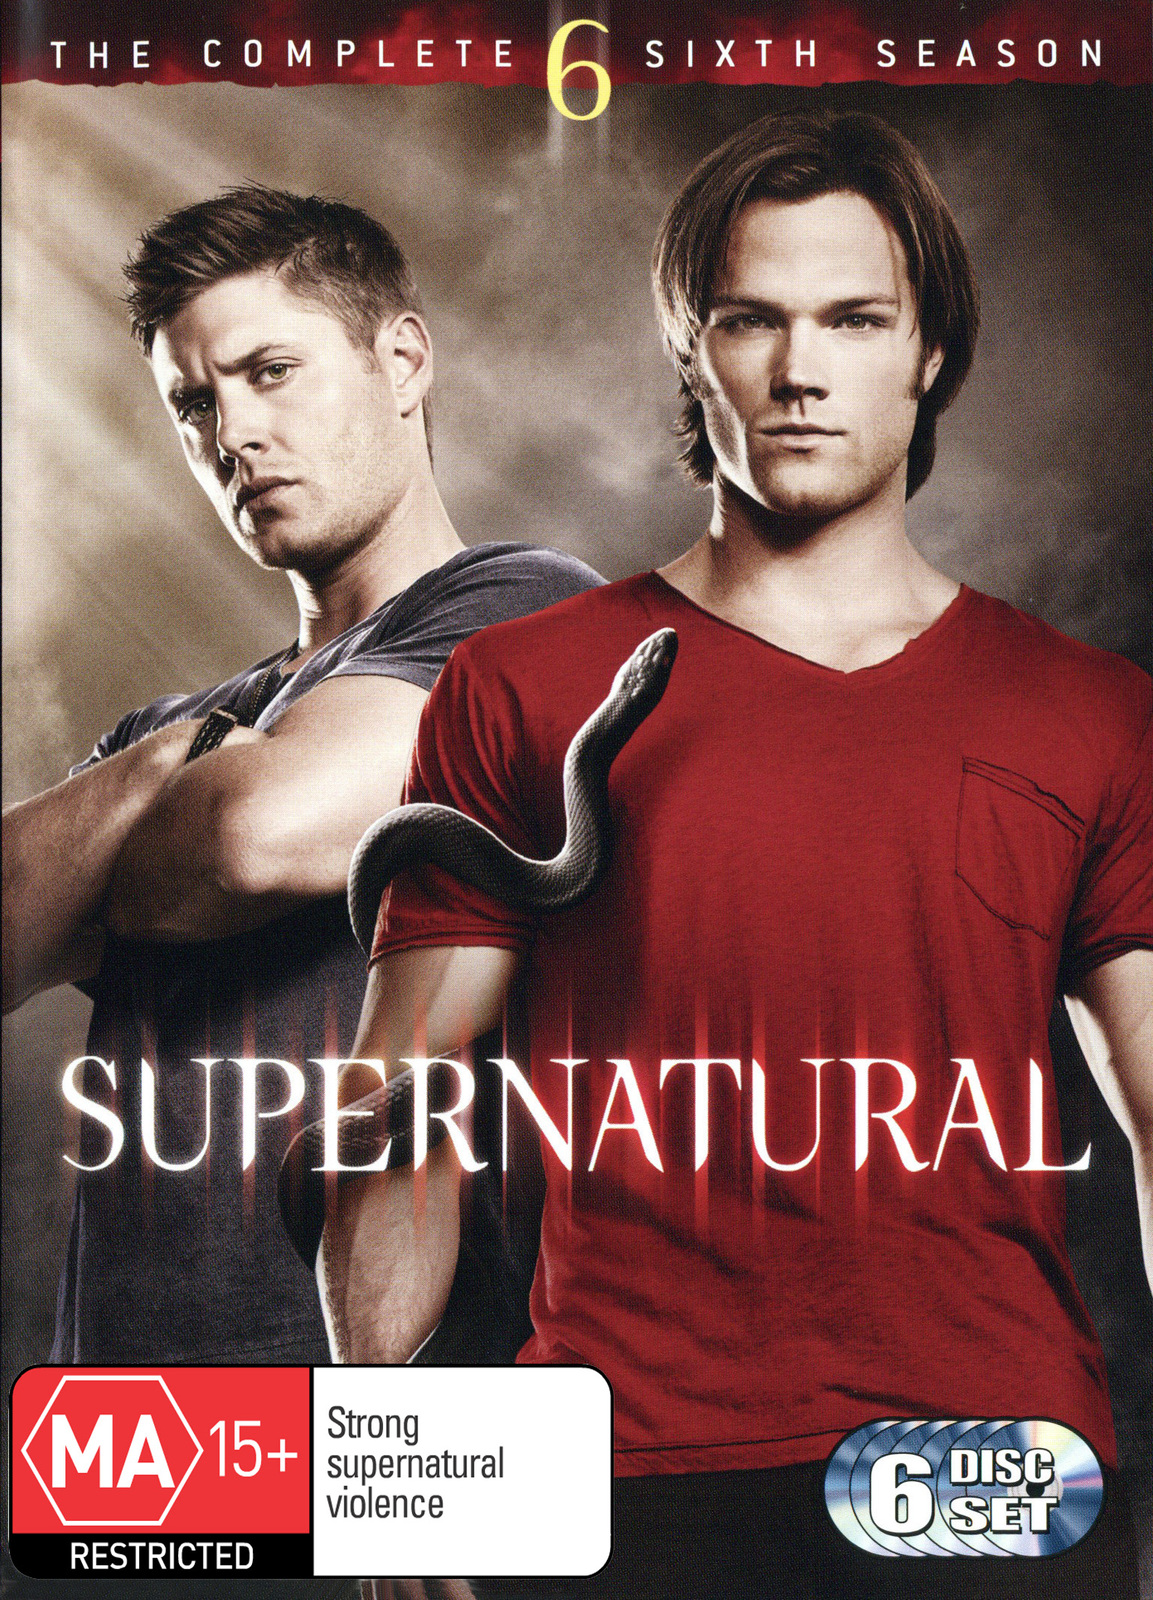 Supernatural - The Complete 6th Season image, Image 1 of 1